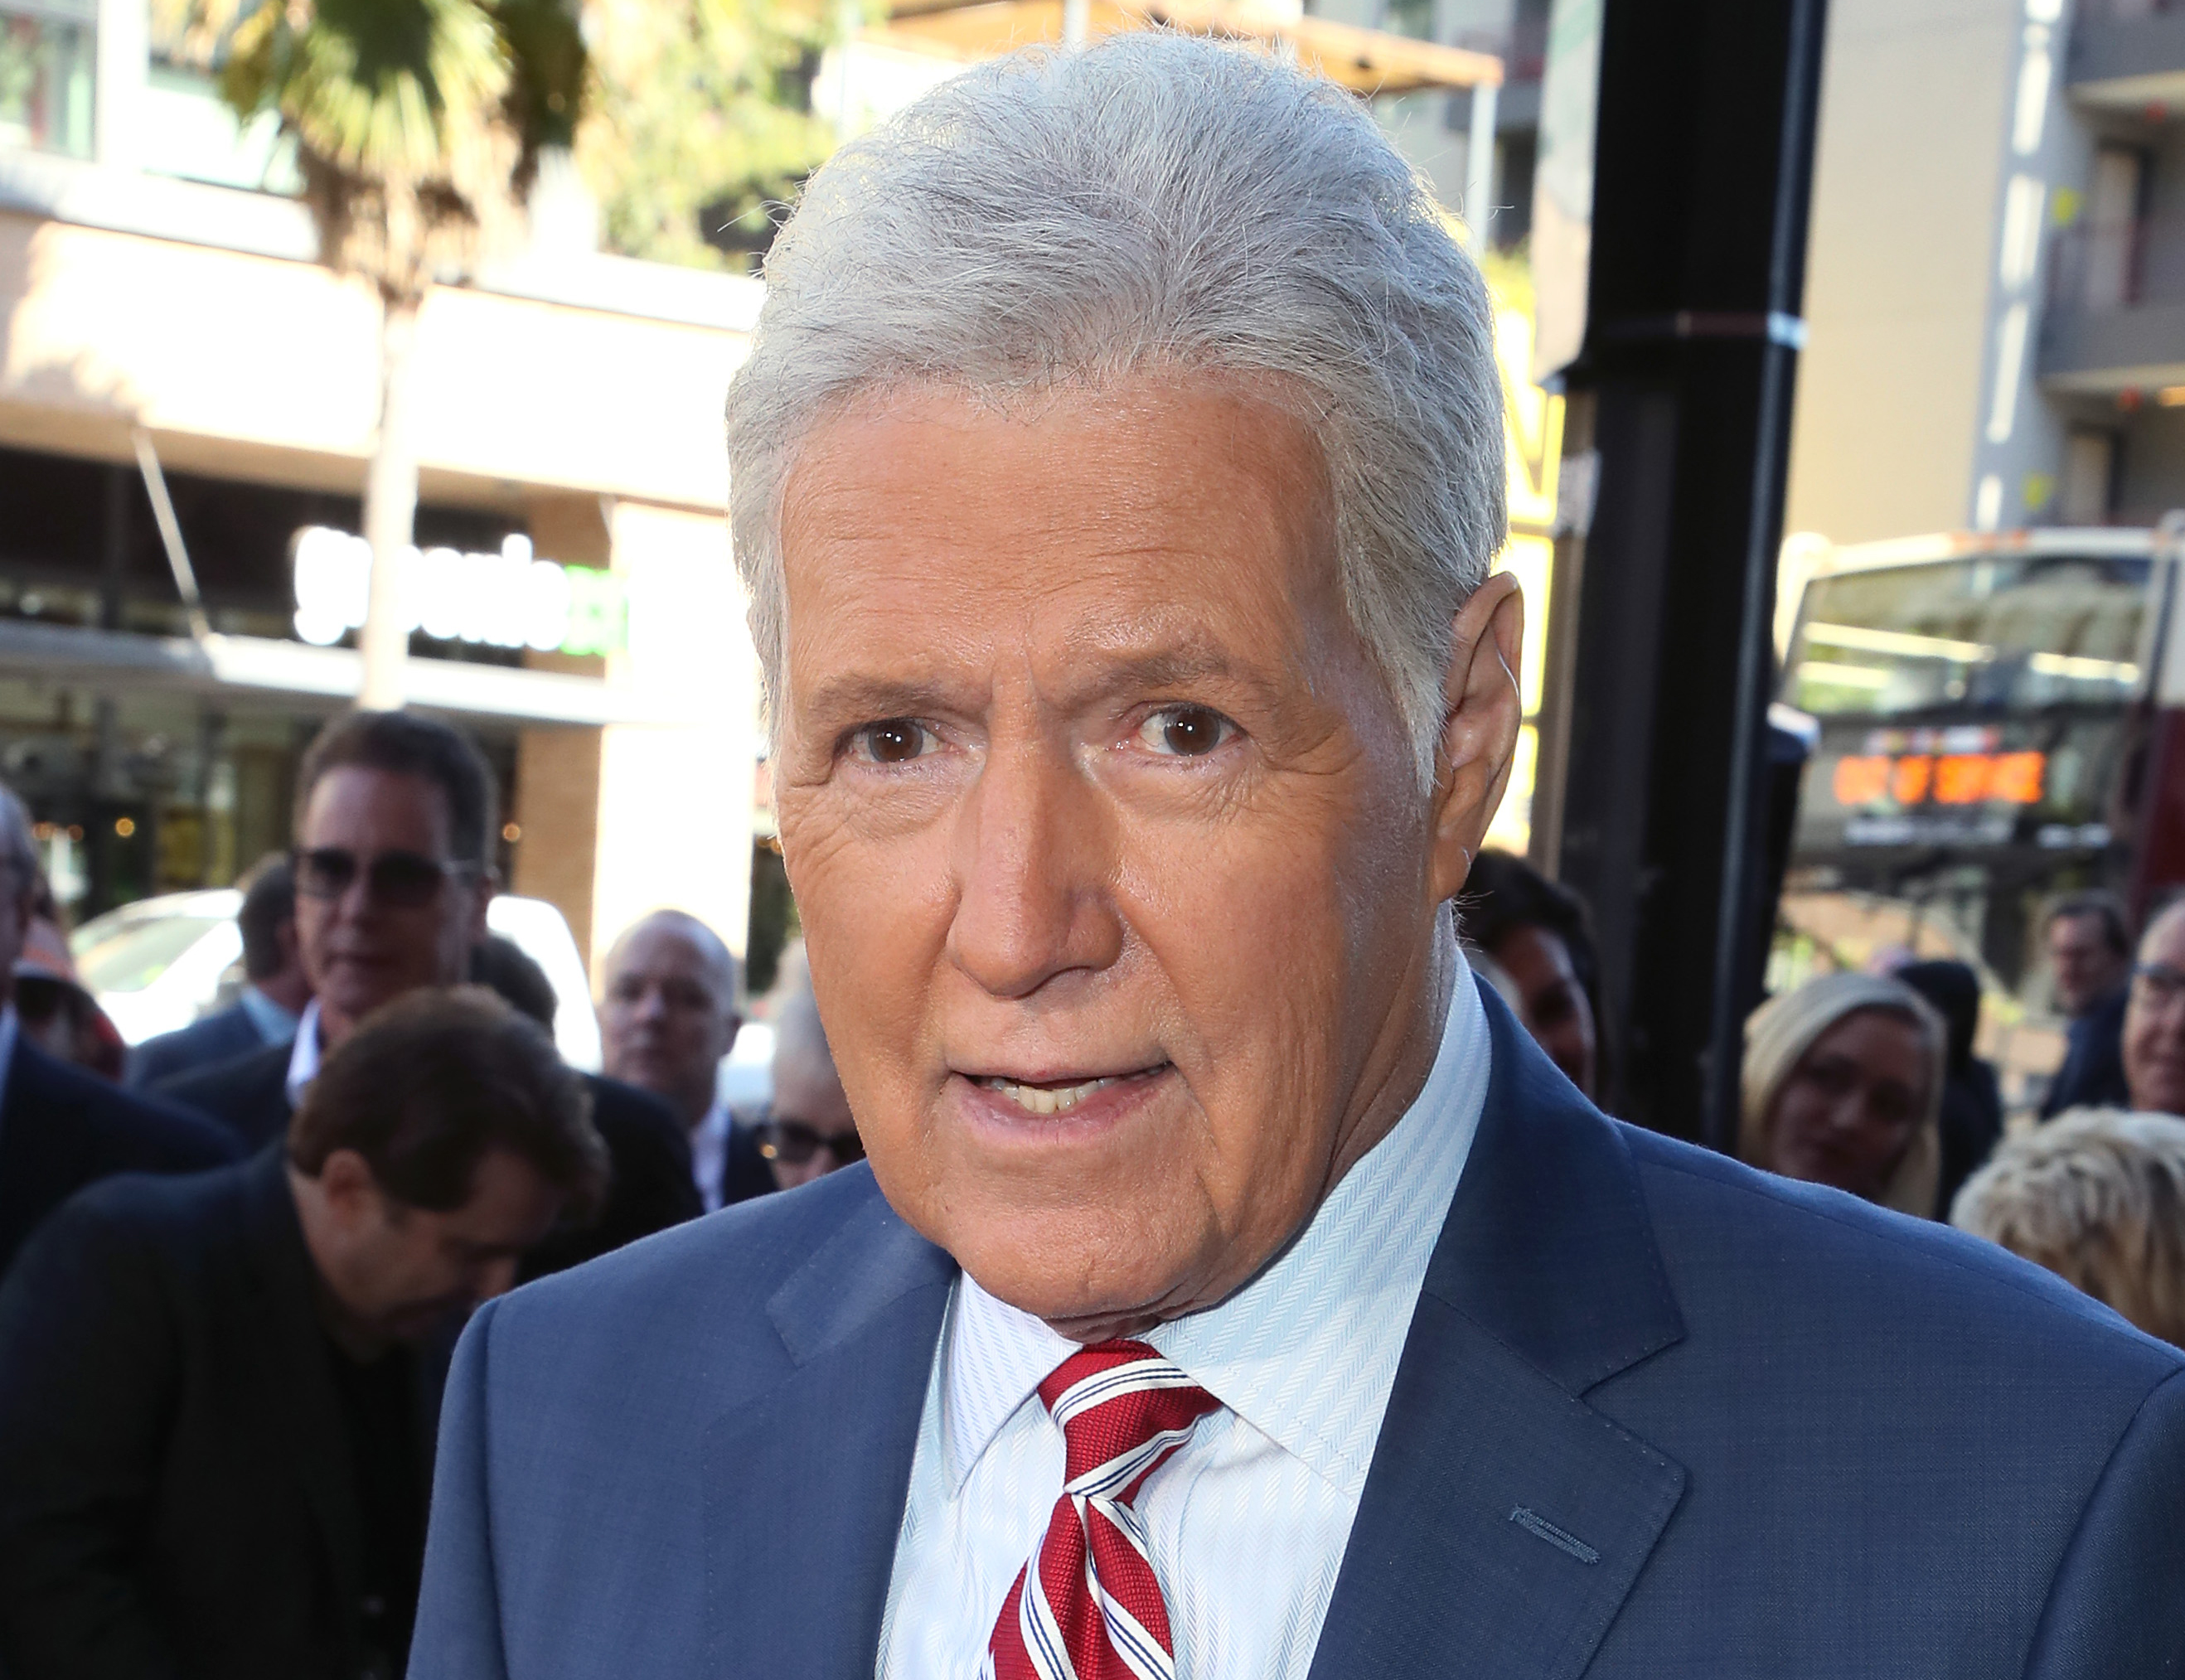 Alex Trebek attends a ceremony for Harry Friedman who was being honored with a Star on the Hollywood Walk of Fame earlier this month in Hollywood, California.